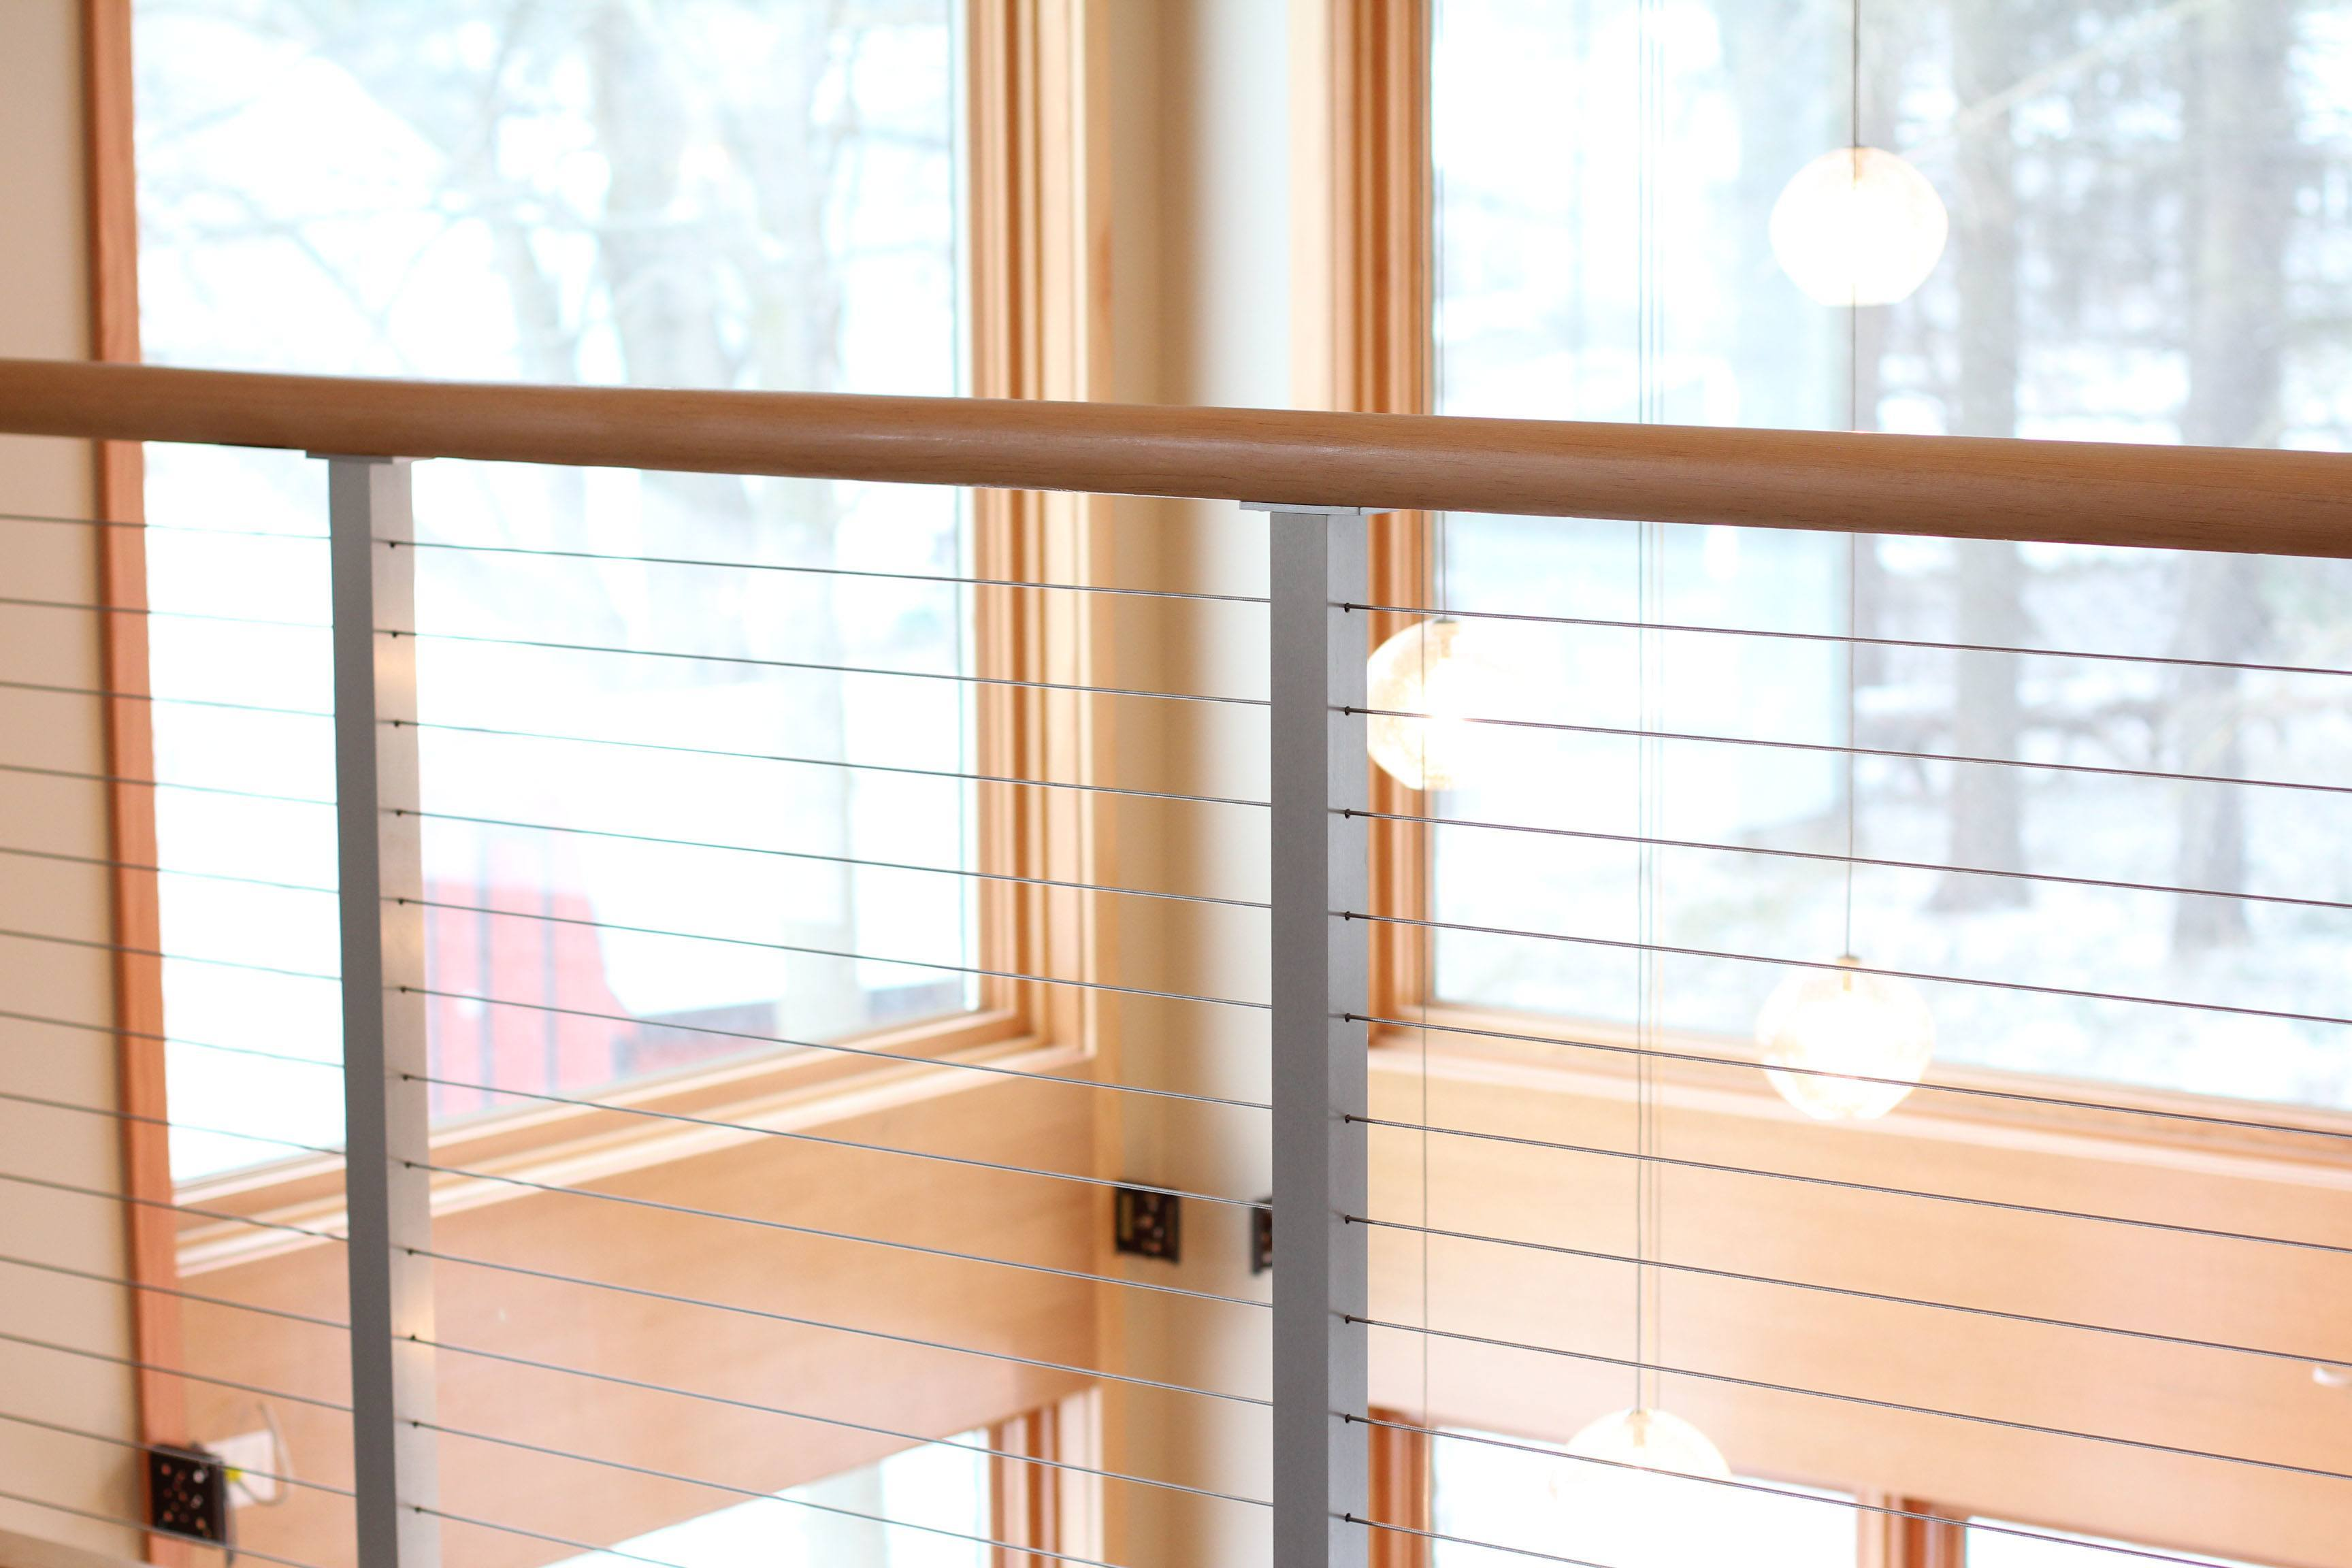 Cable railing allows for an open view out the expansive windows